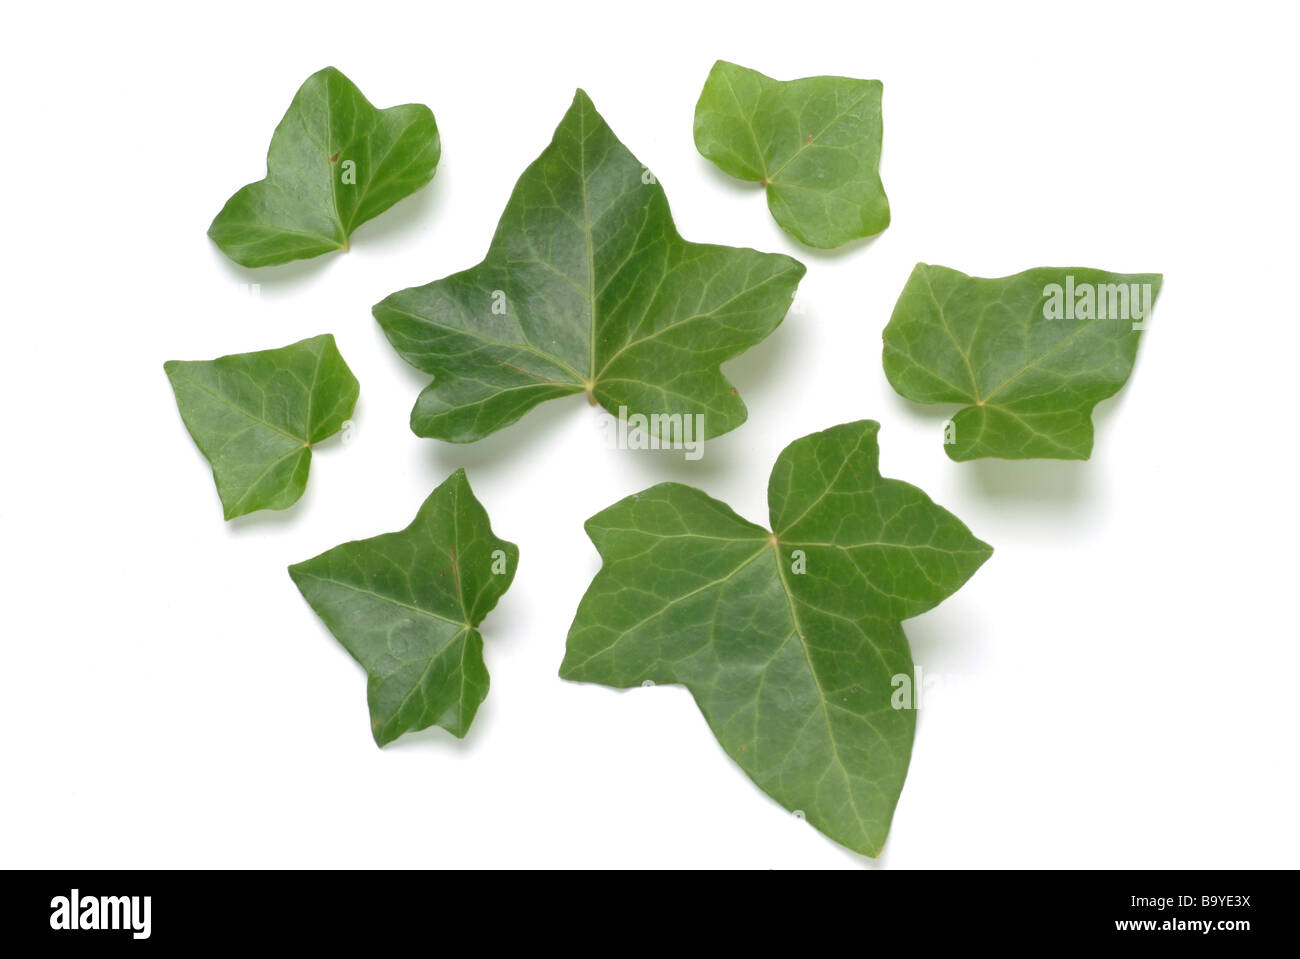 Leaves of medicinal plant Efeu Common Ivy Hedera helix Edera - Stock Image